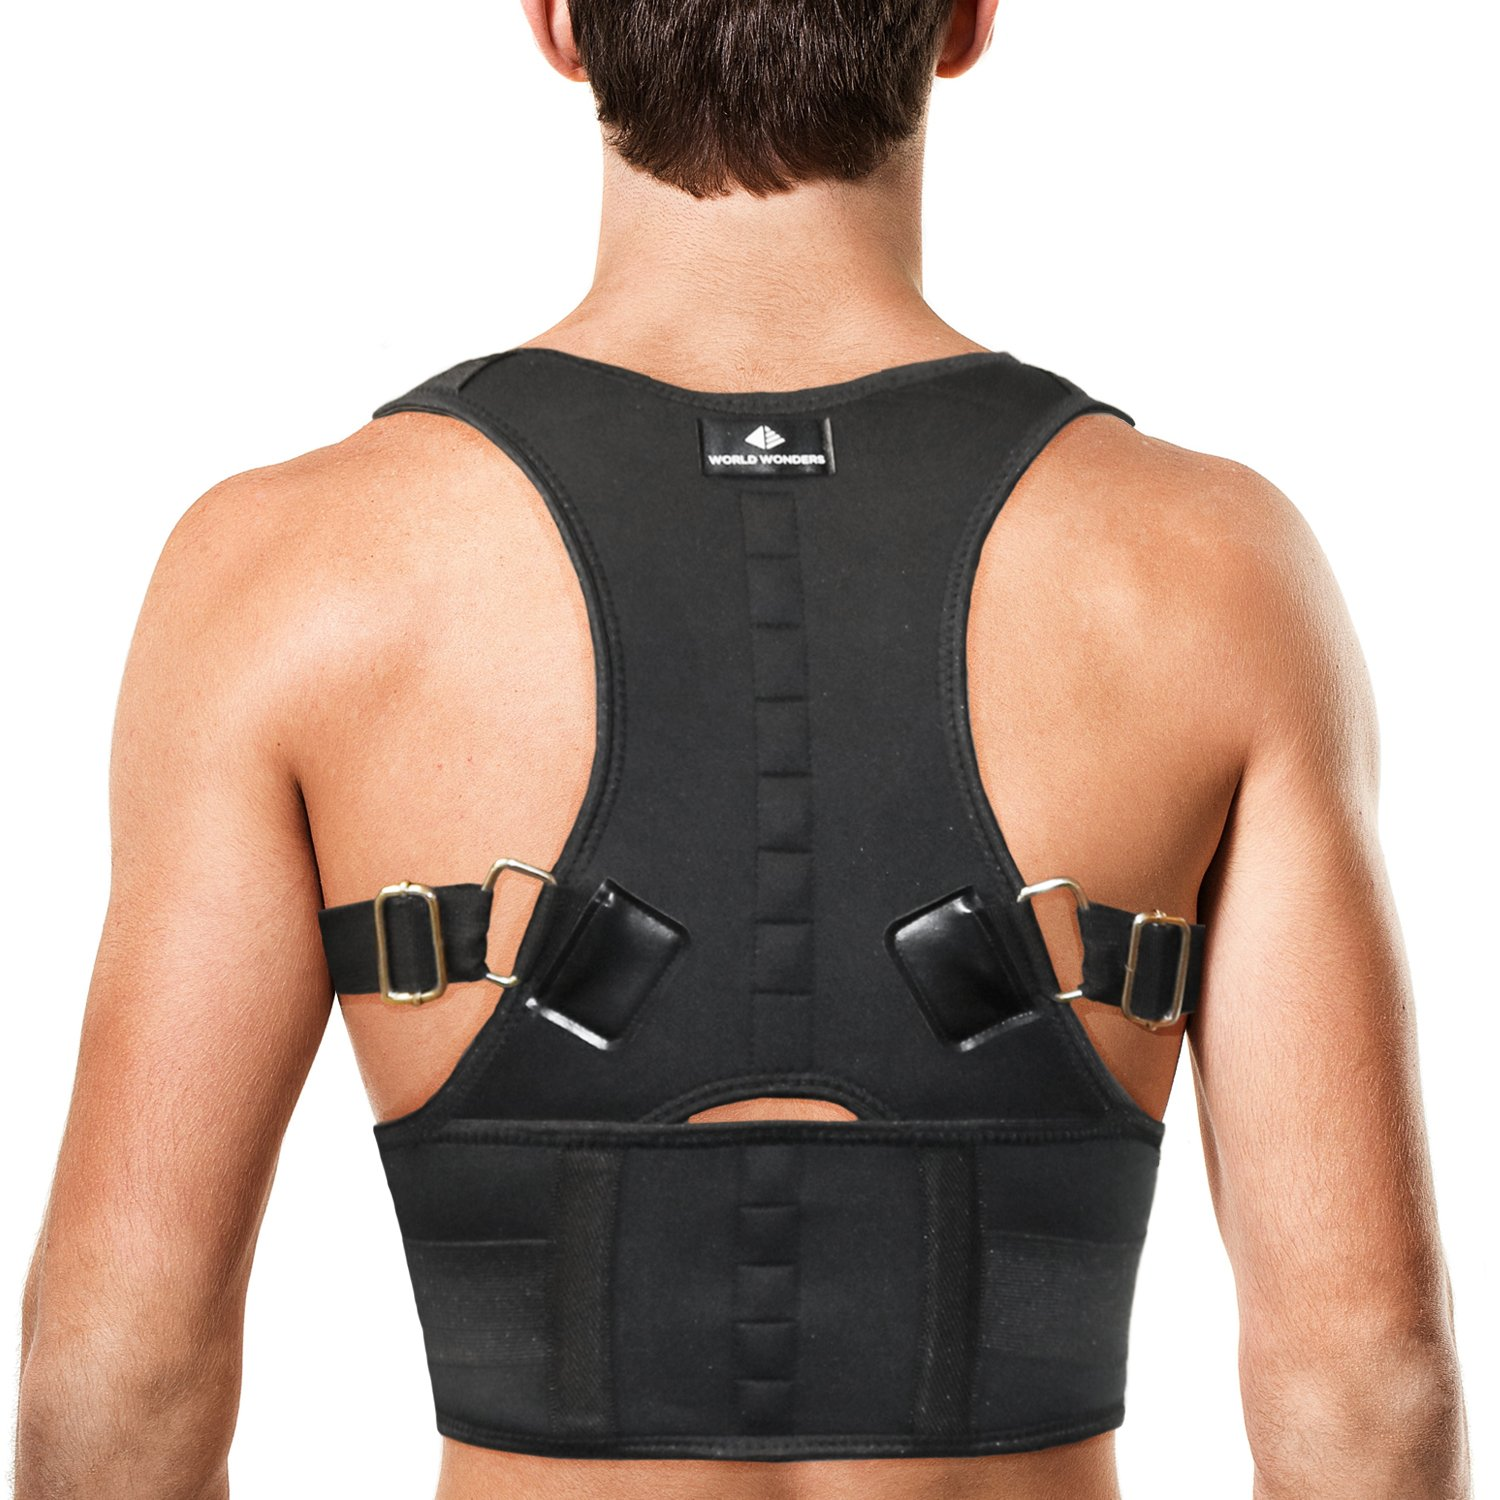 World Wonders Adjustable Magnetic Back Posture Corrector for Women & Men | Back Brace Protects Lumbar Spine w/Effective, Comfortable Design | Pain Relief for Upper and Lower Back | Waist - S(26''-32'')